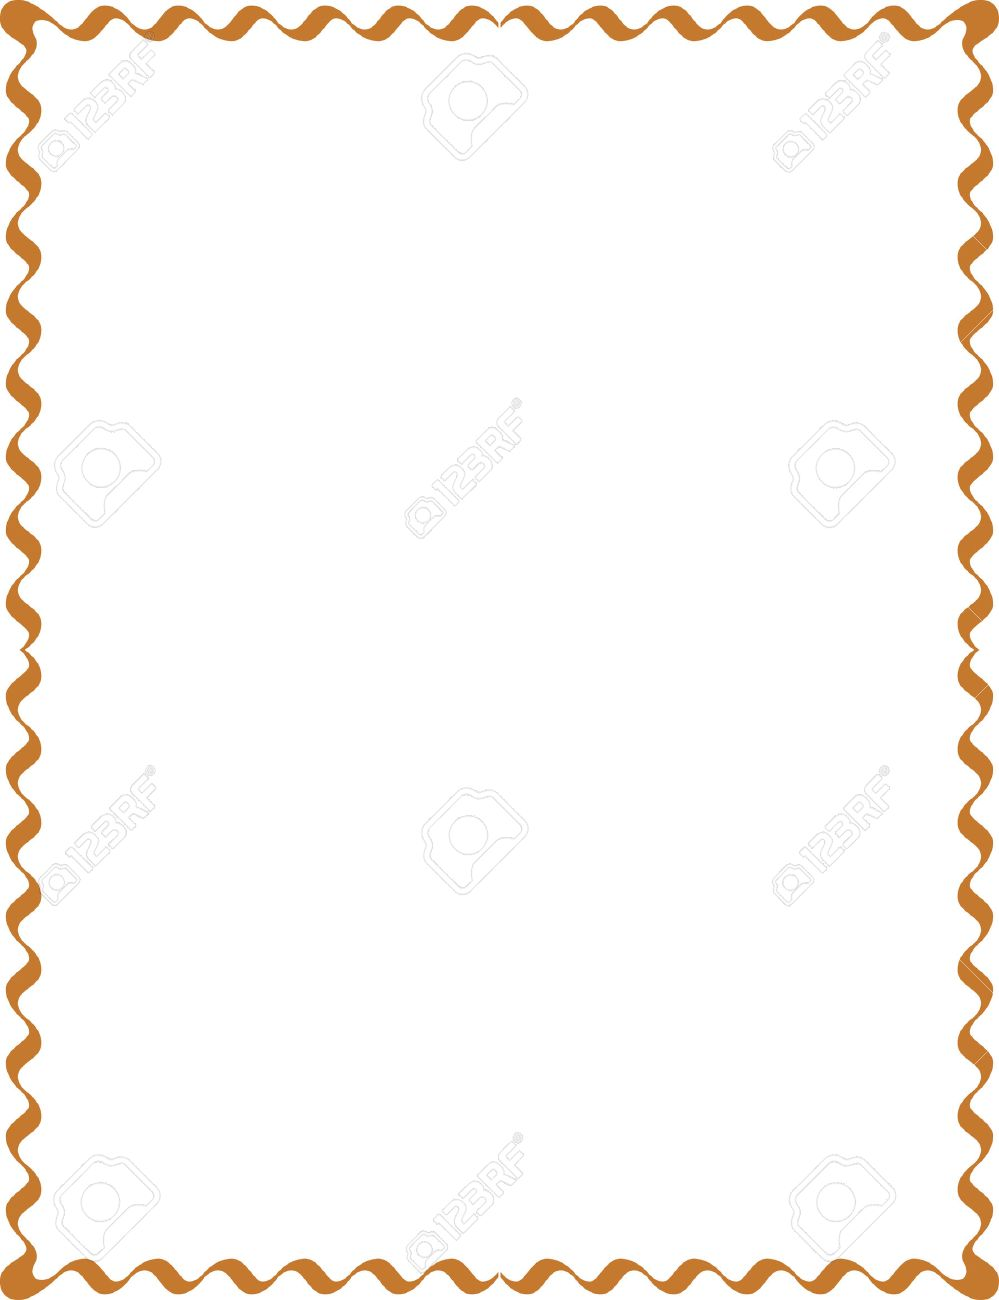 Simple Lines Border Frame Vector Design Colored Stock